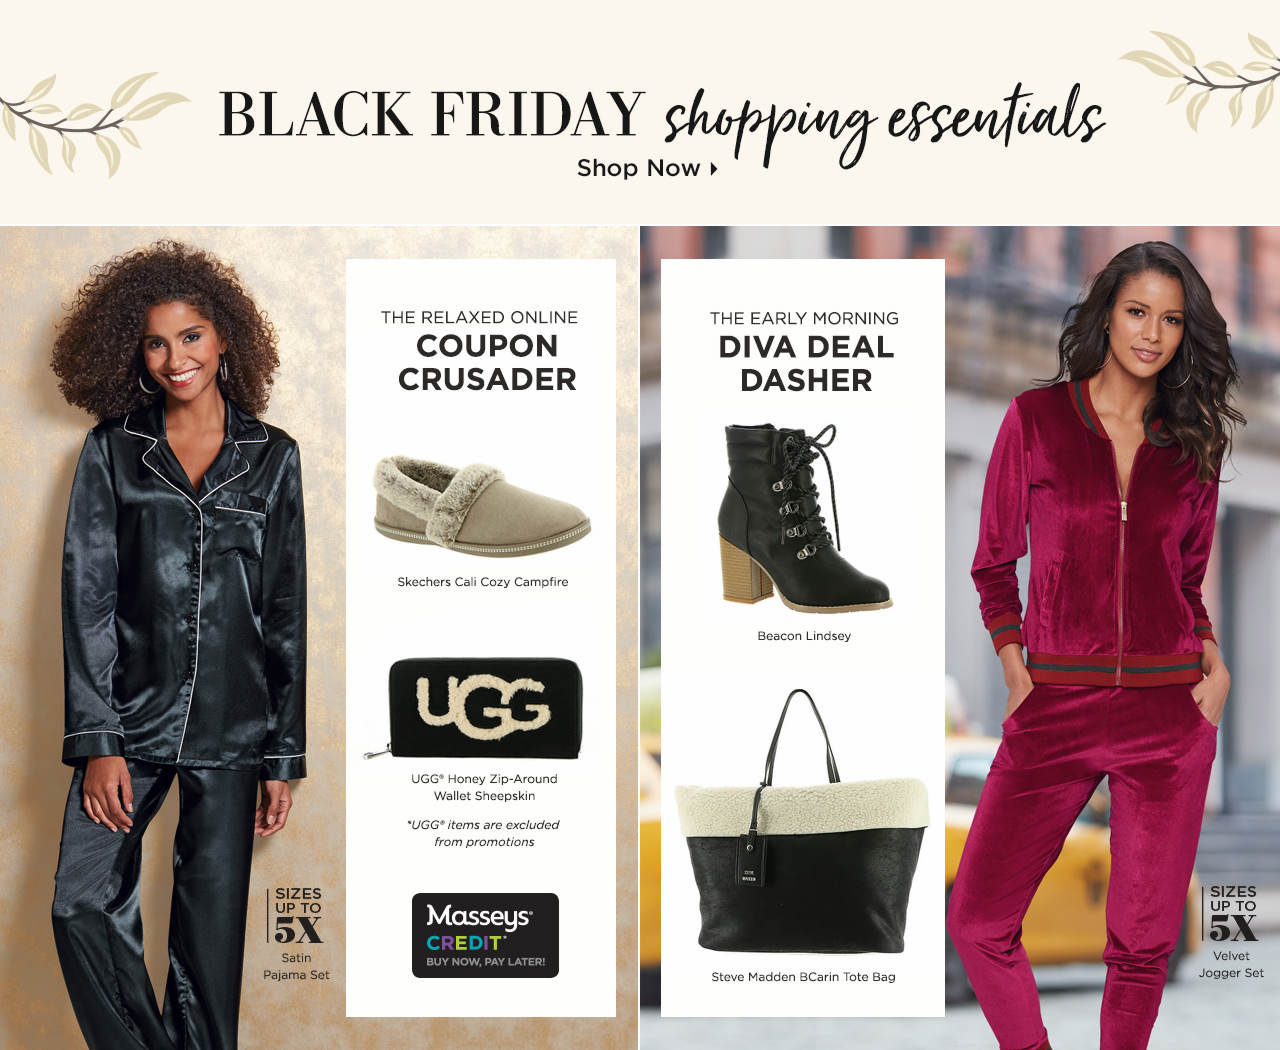 Shop For Your Black Friday  Shopping Outfit - Cozy Slippers and Pajamas For The Relaxed Online Coupon Crusader and Fashion-Forward Styles For The Early Morning Diva Dasher!